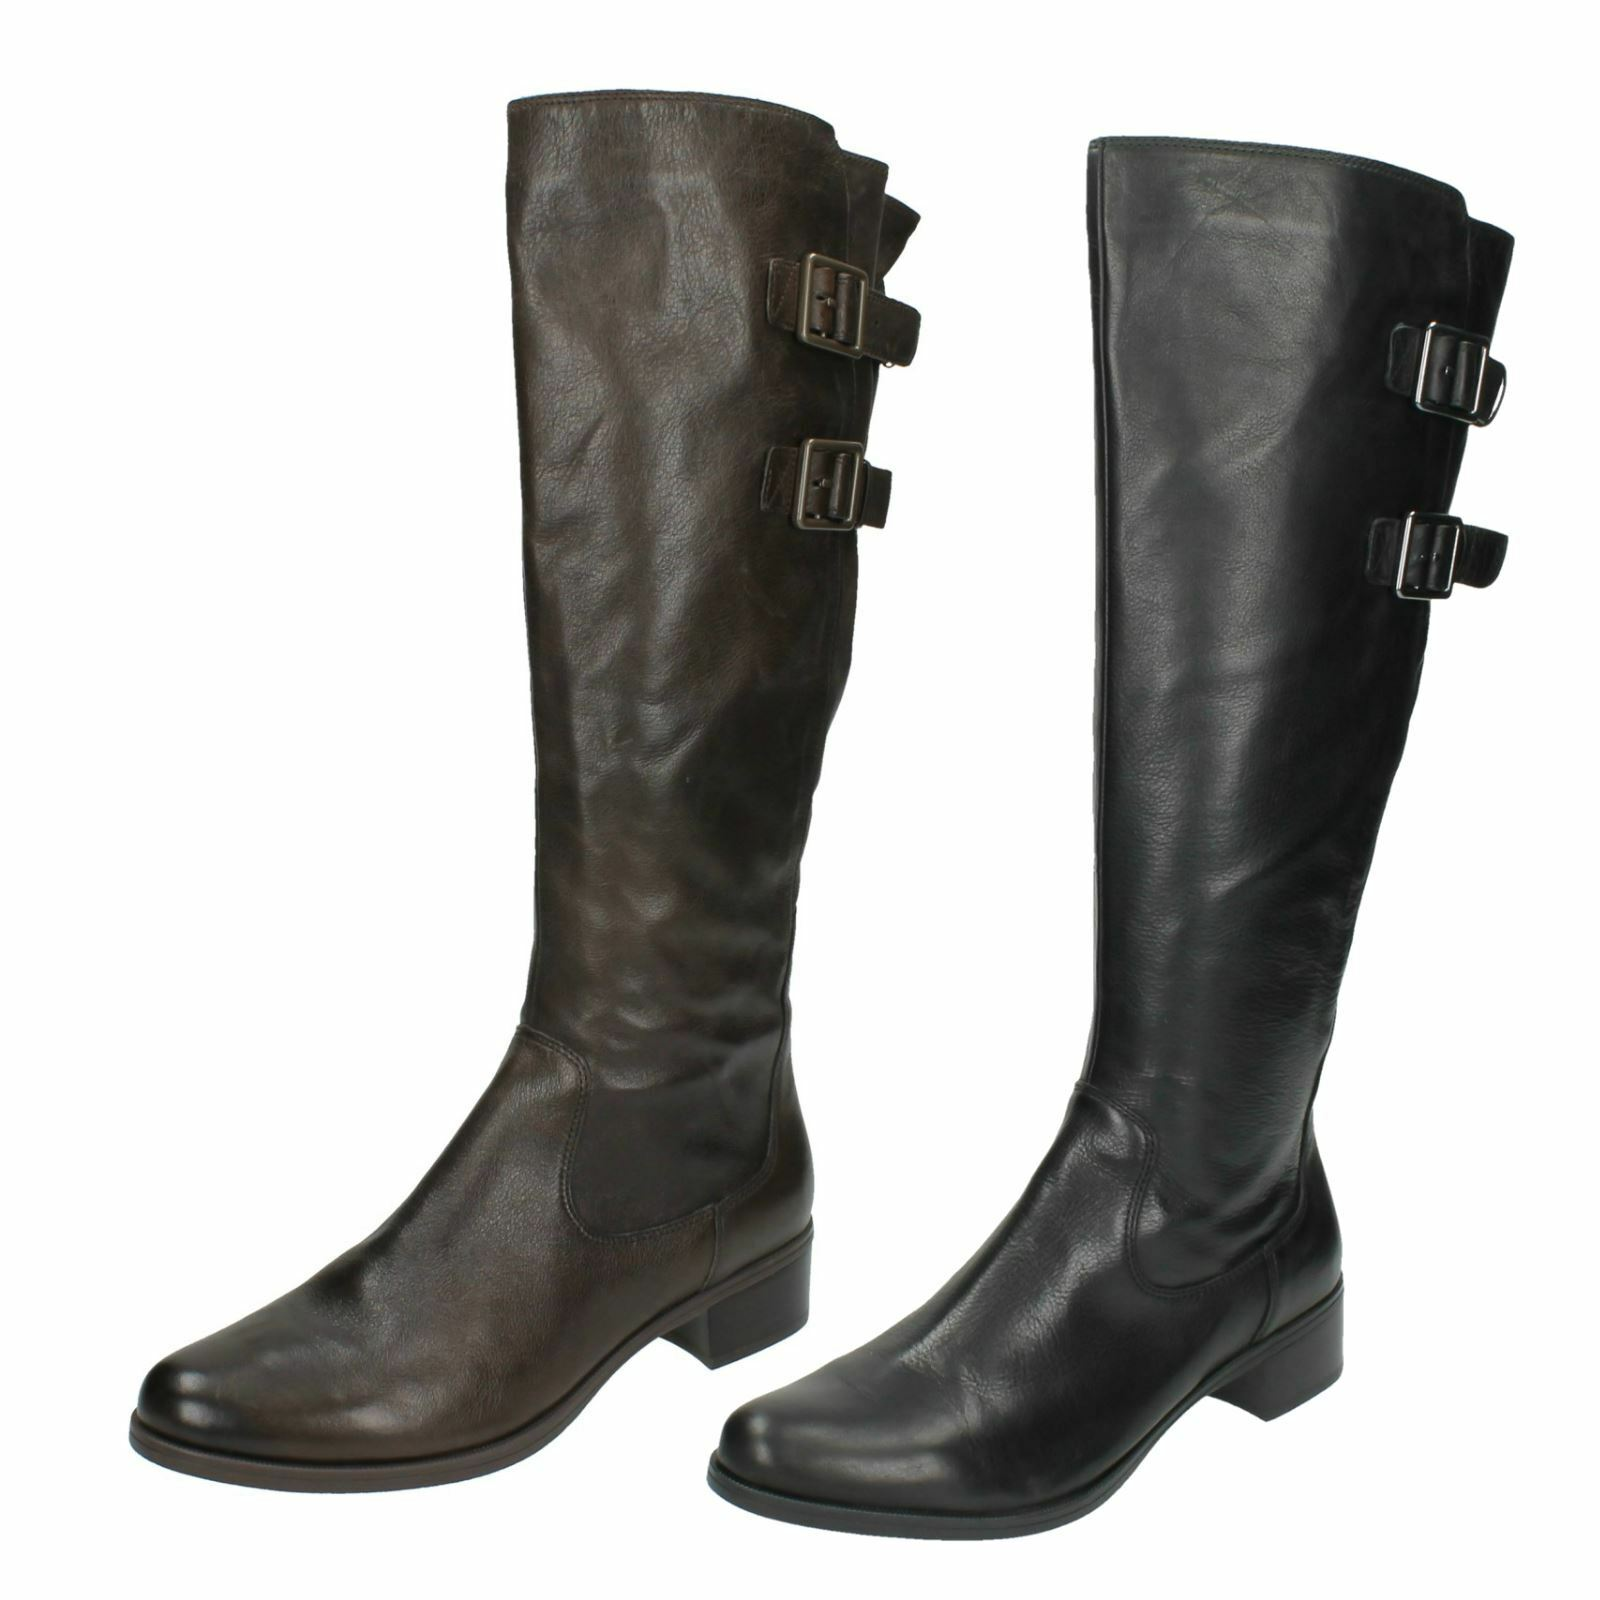 Clarks Ladies Knee High Boots Likeable Me